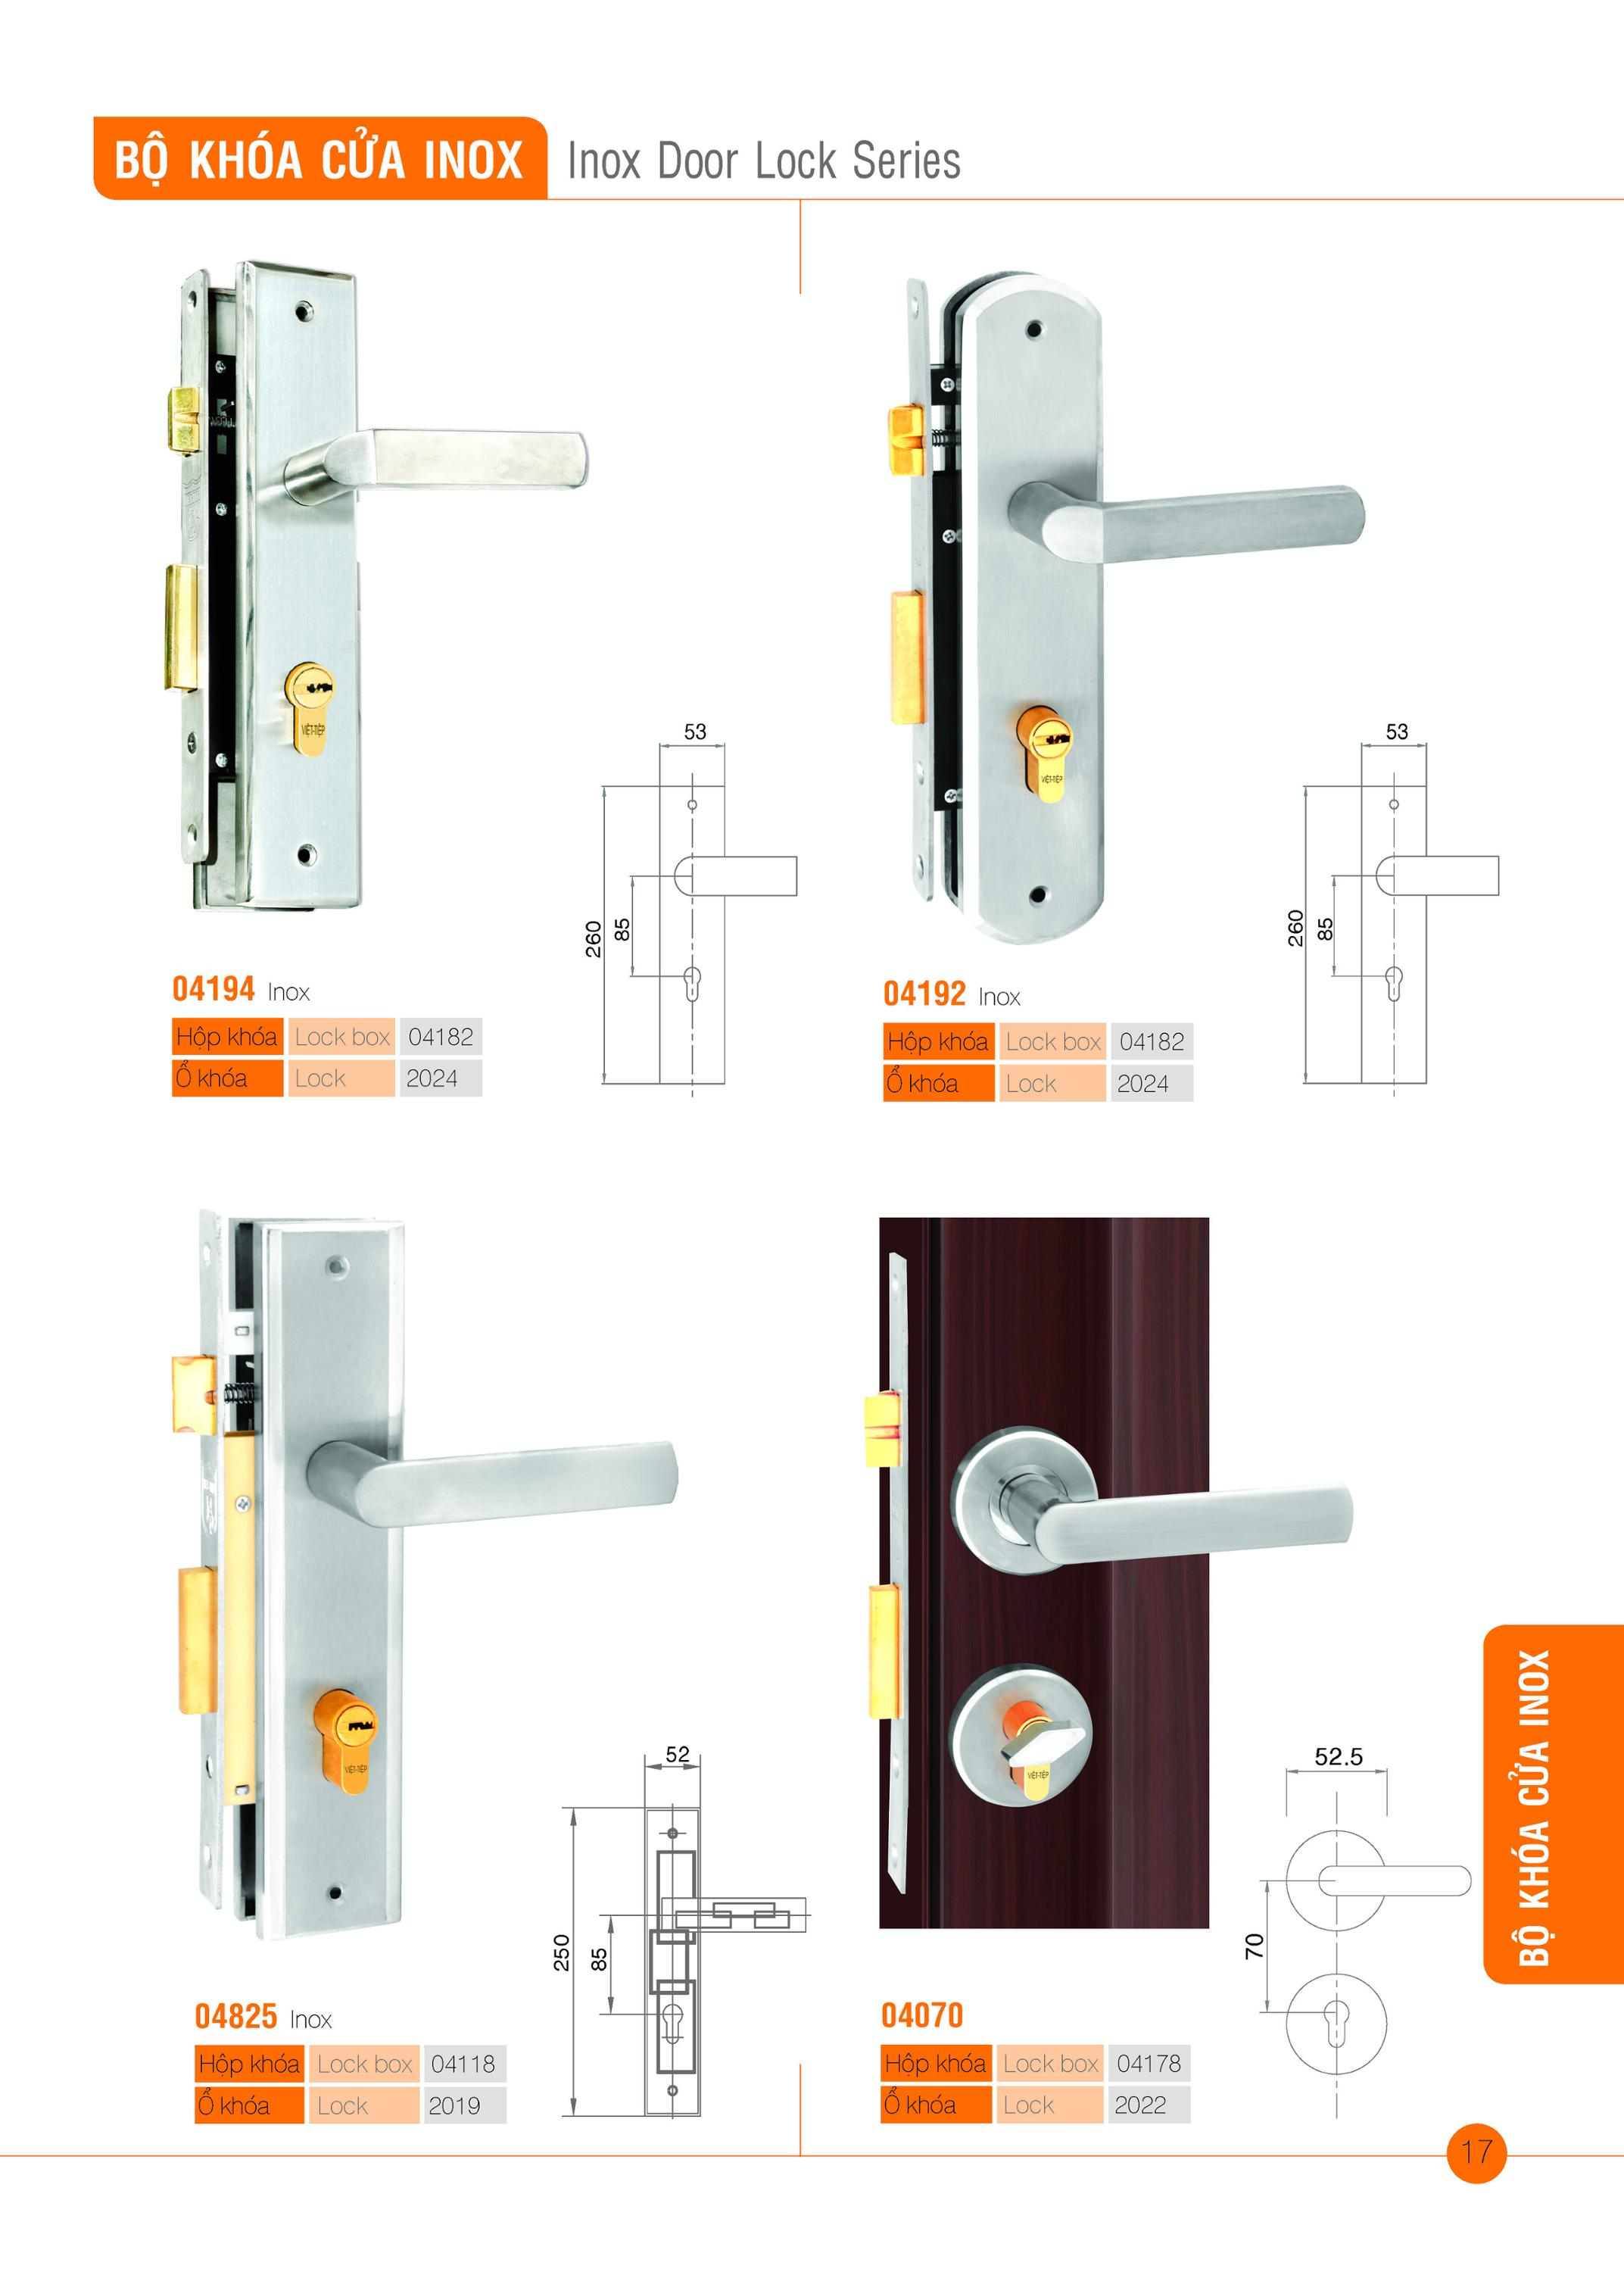 Inox Door Lock Series (Sus 17)